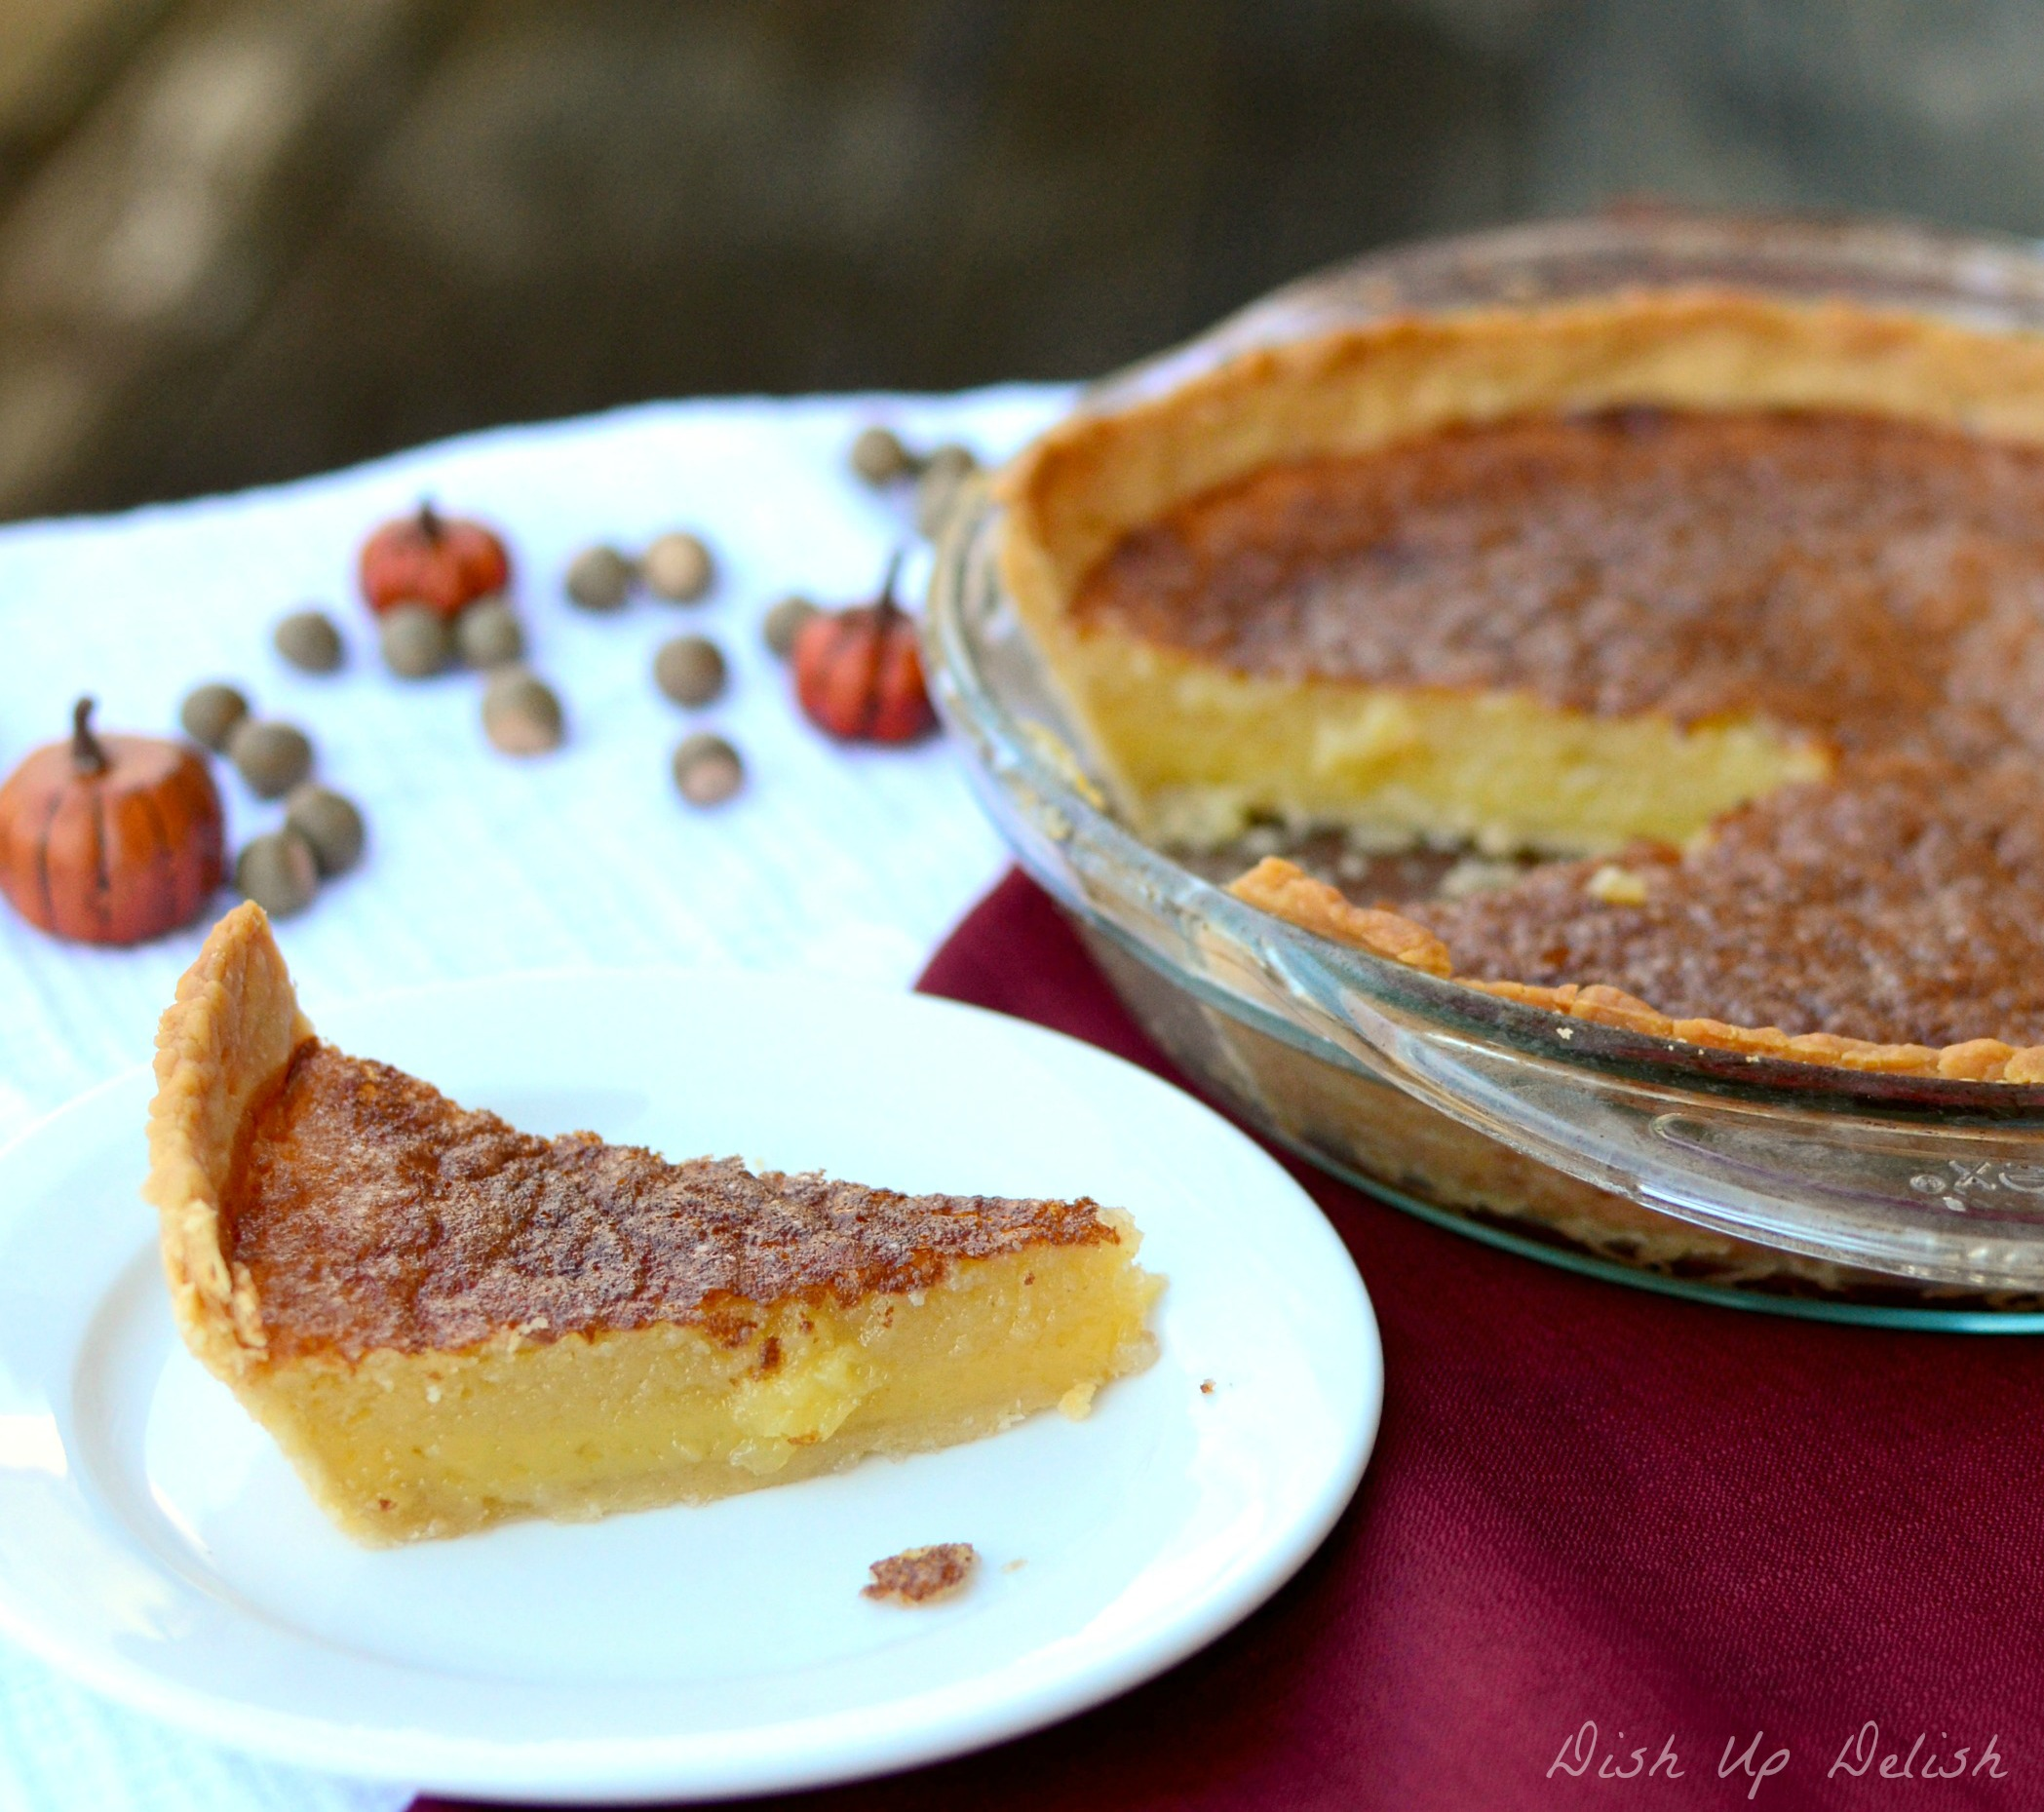 Buttermilk Pie 1 Dish Up Delish